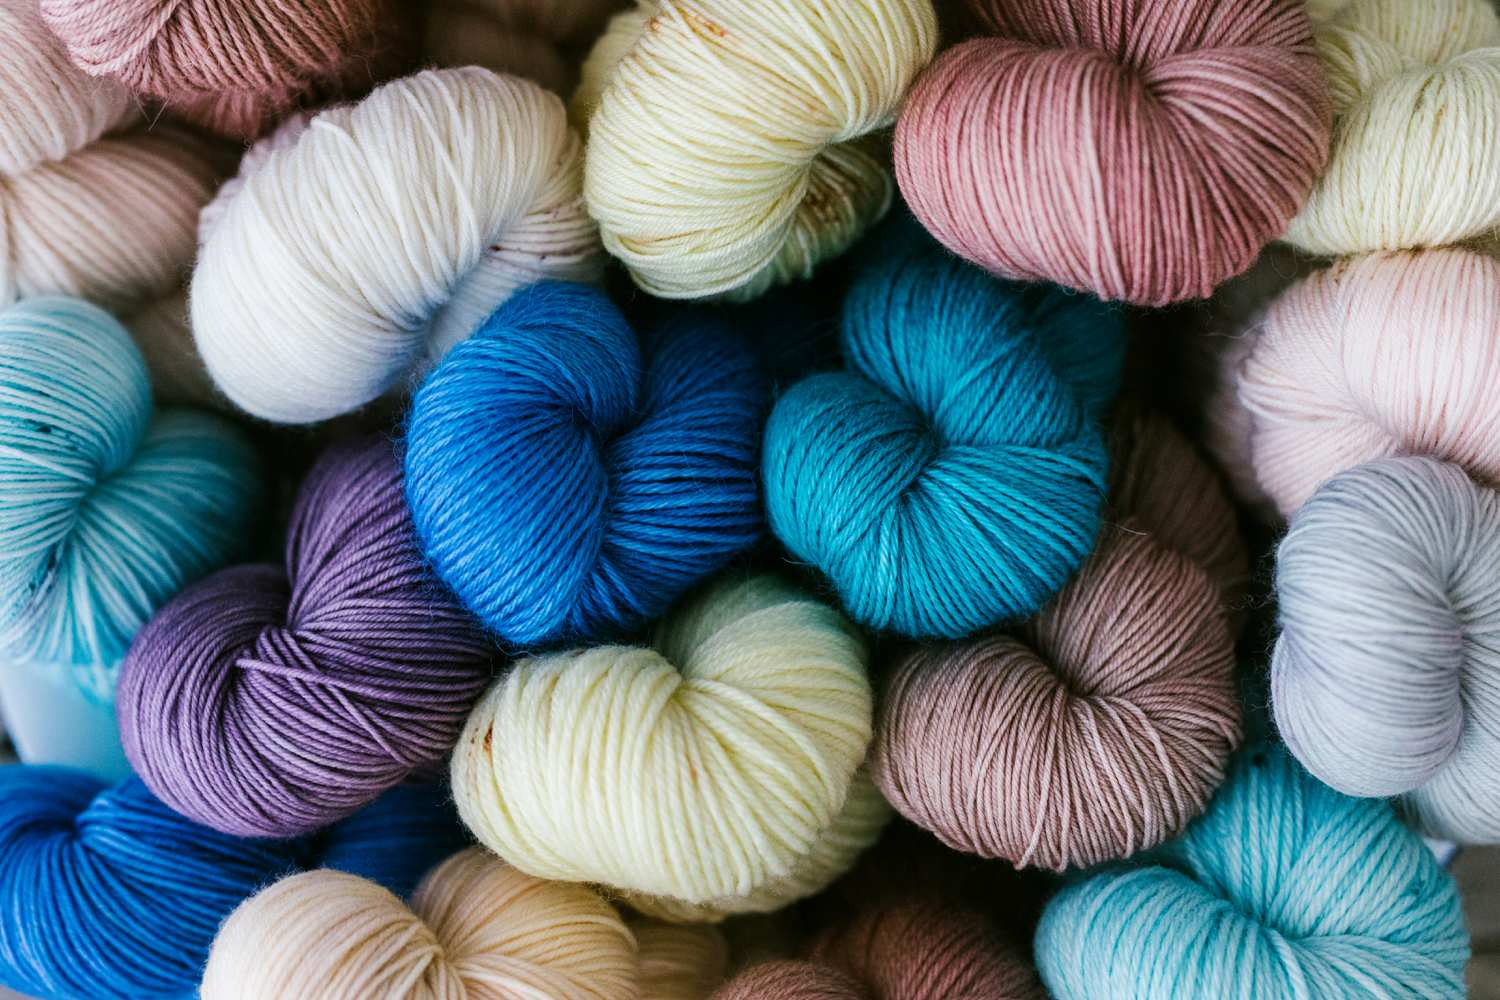 Yarn wool commercial photography